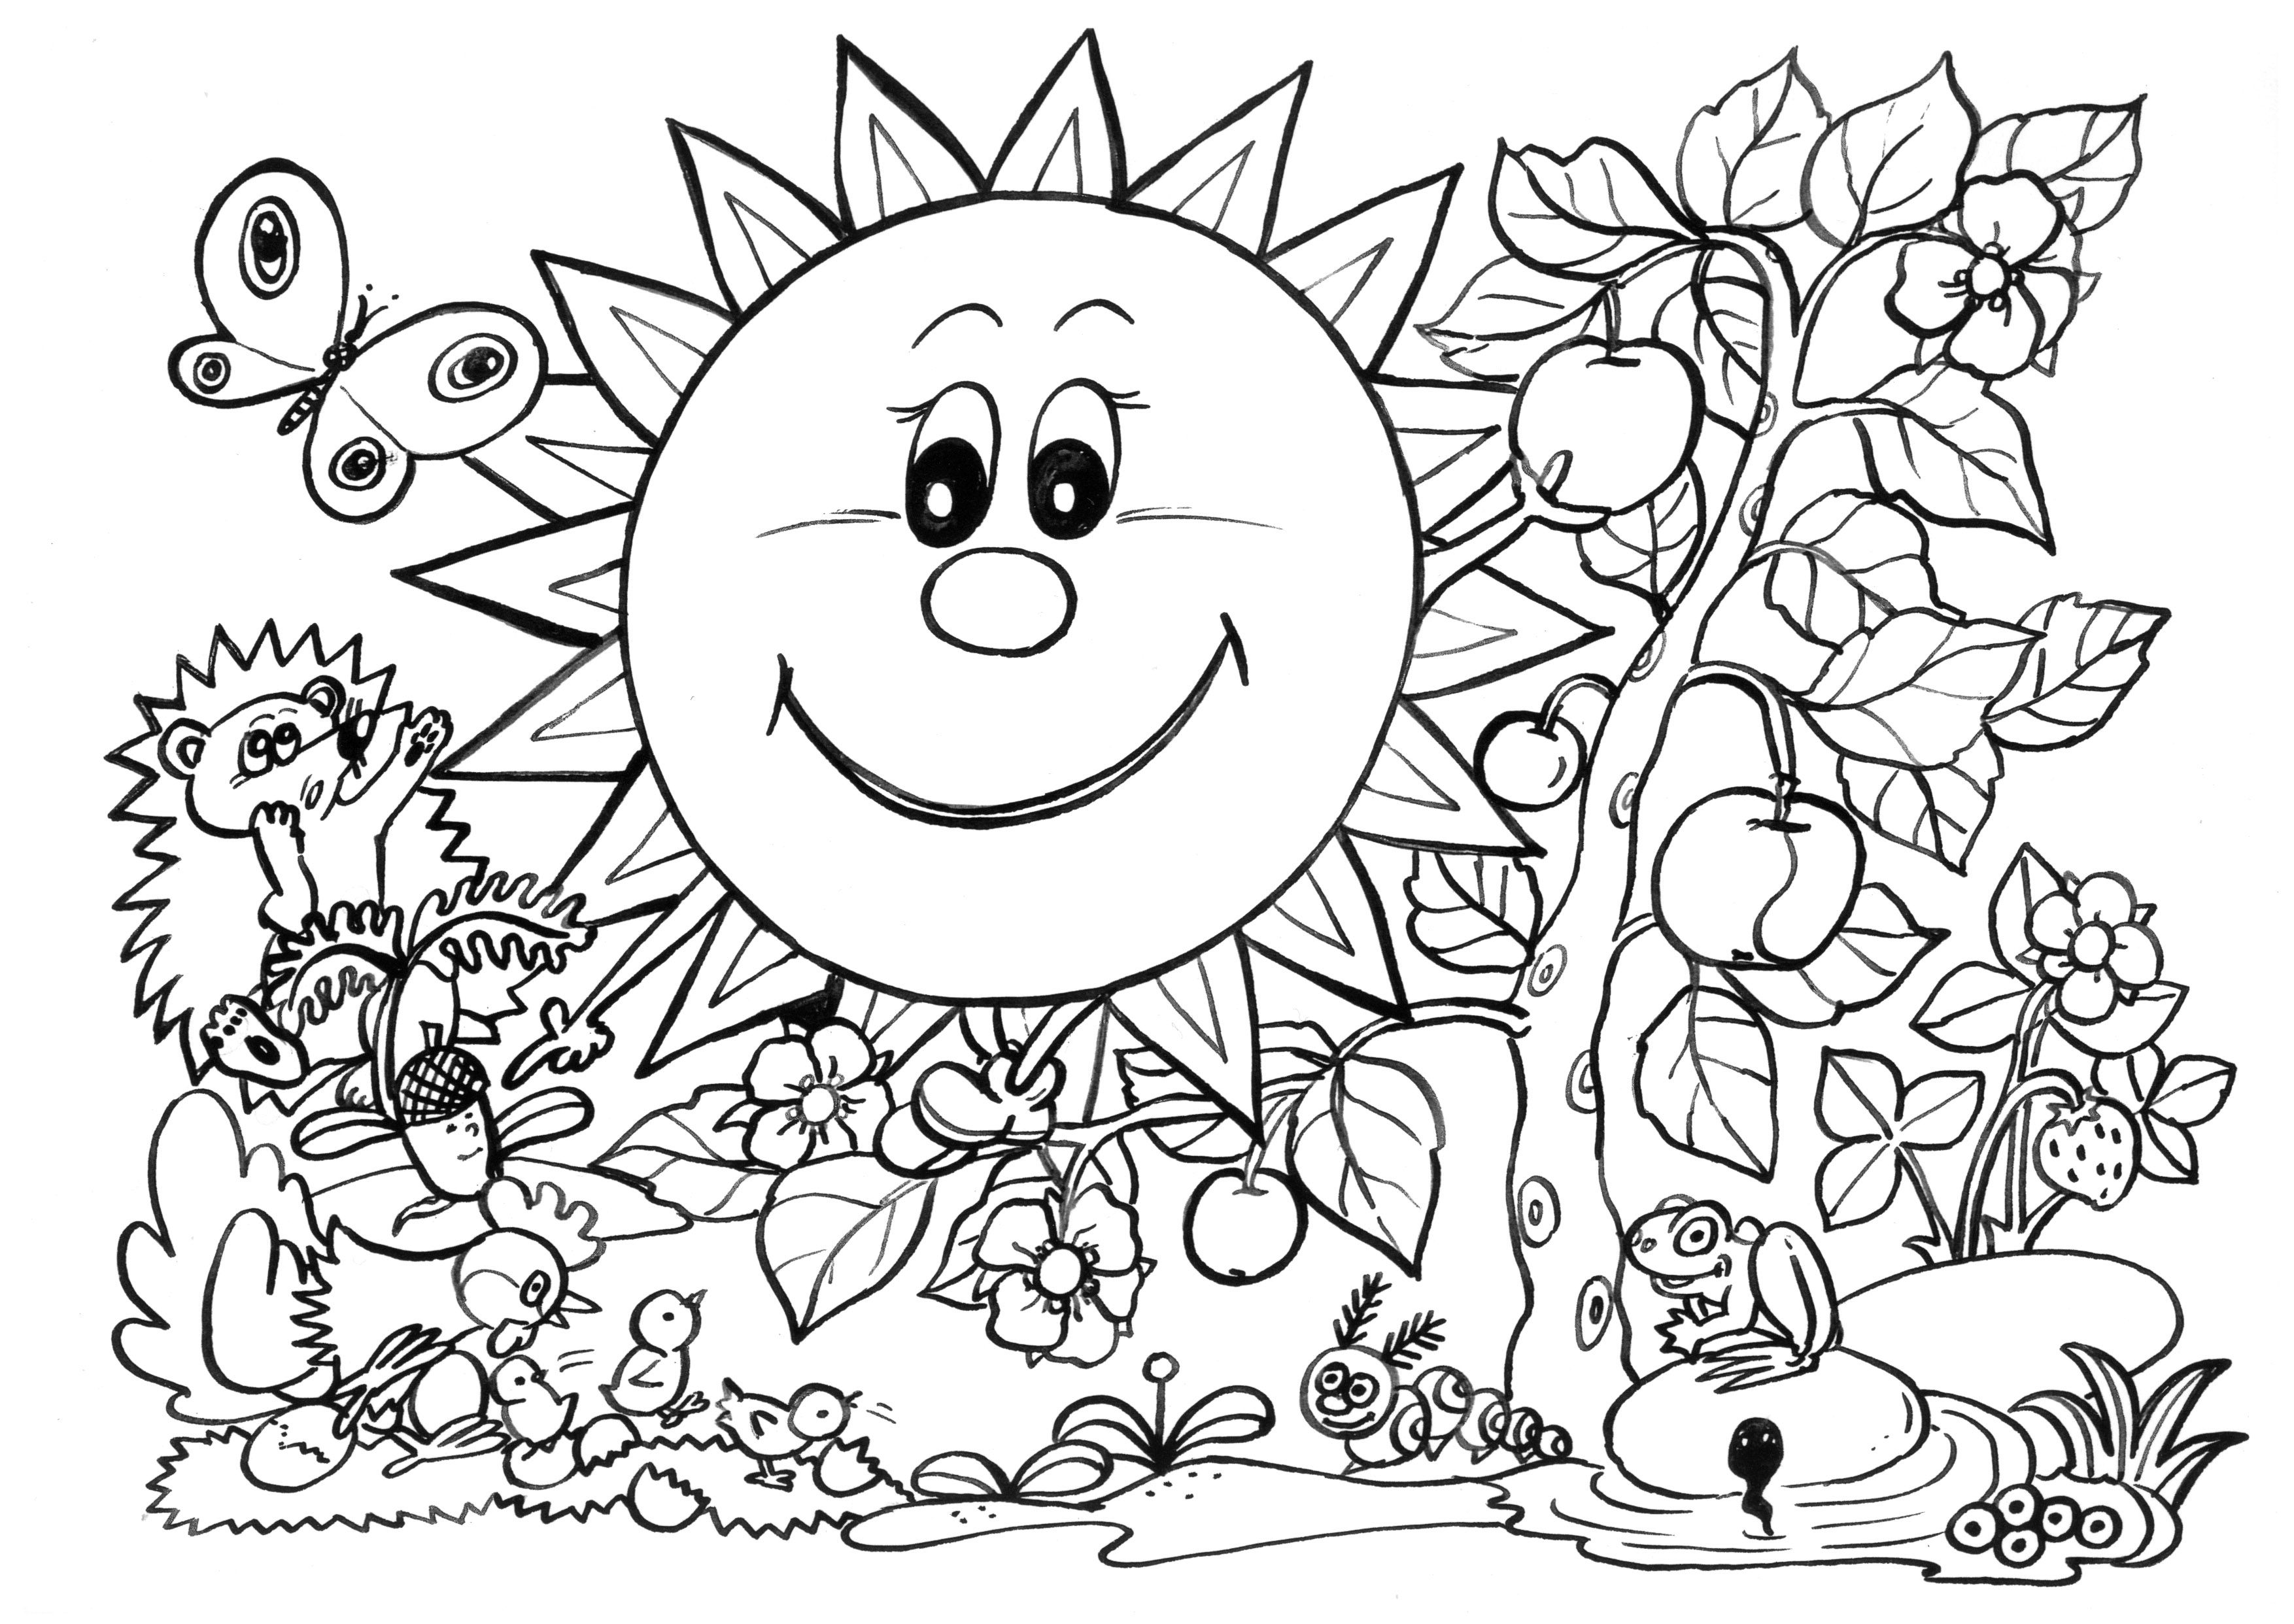 coloring nature images 27 printable nature coloring pages for your little ones coloring images nature